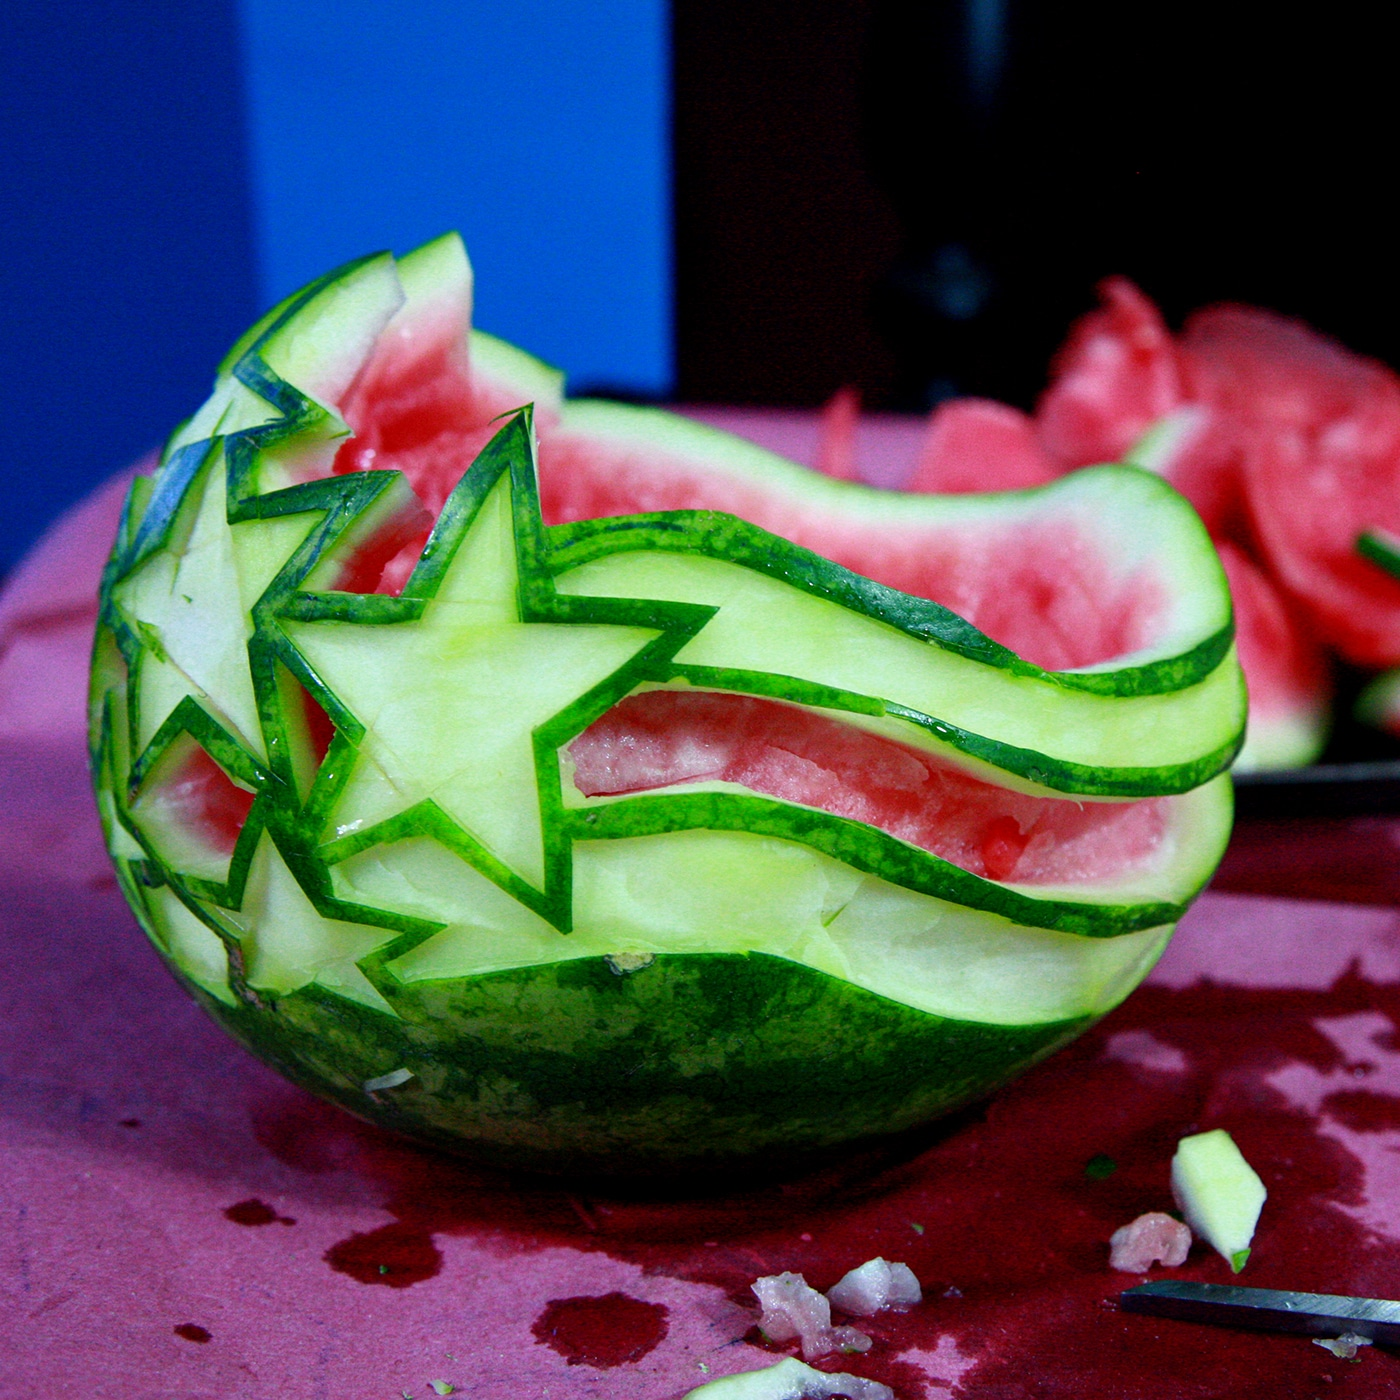 The top edge of the watermelon has been bevelled towards the inner edge.